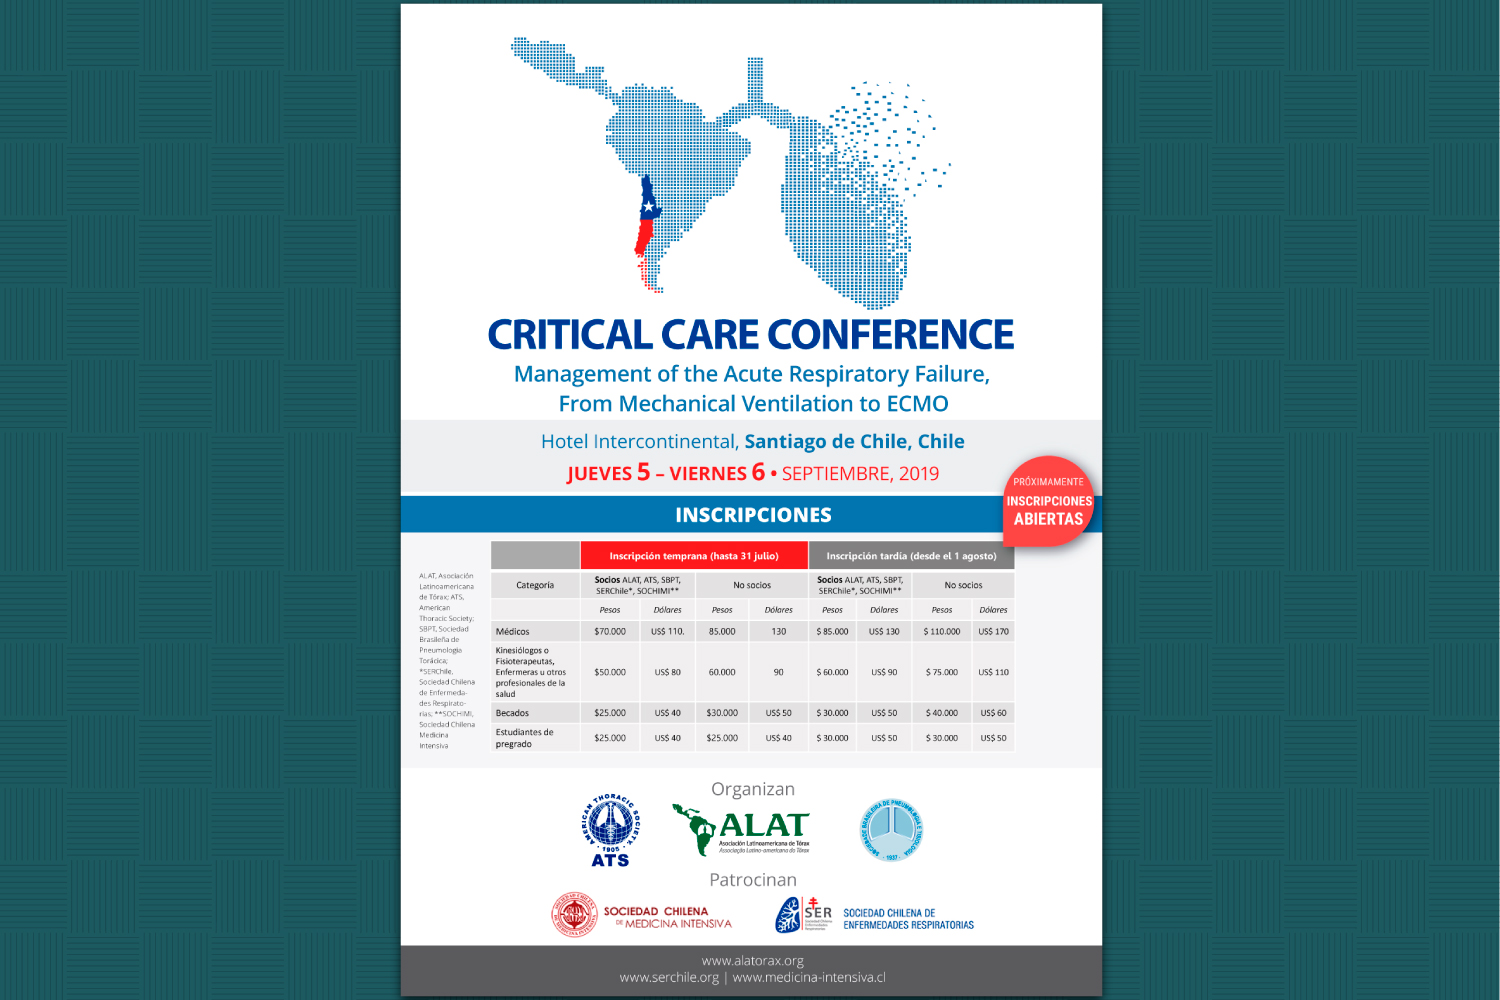 CRITICAL CARE CONFERENCE 2019. Management of the Acute Respiratory Failure, From Mechanical Ventilation to ECMO